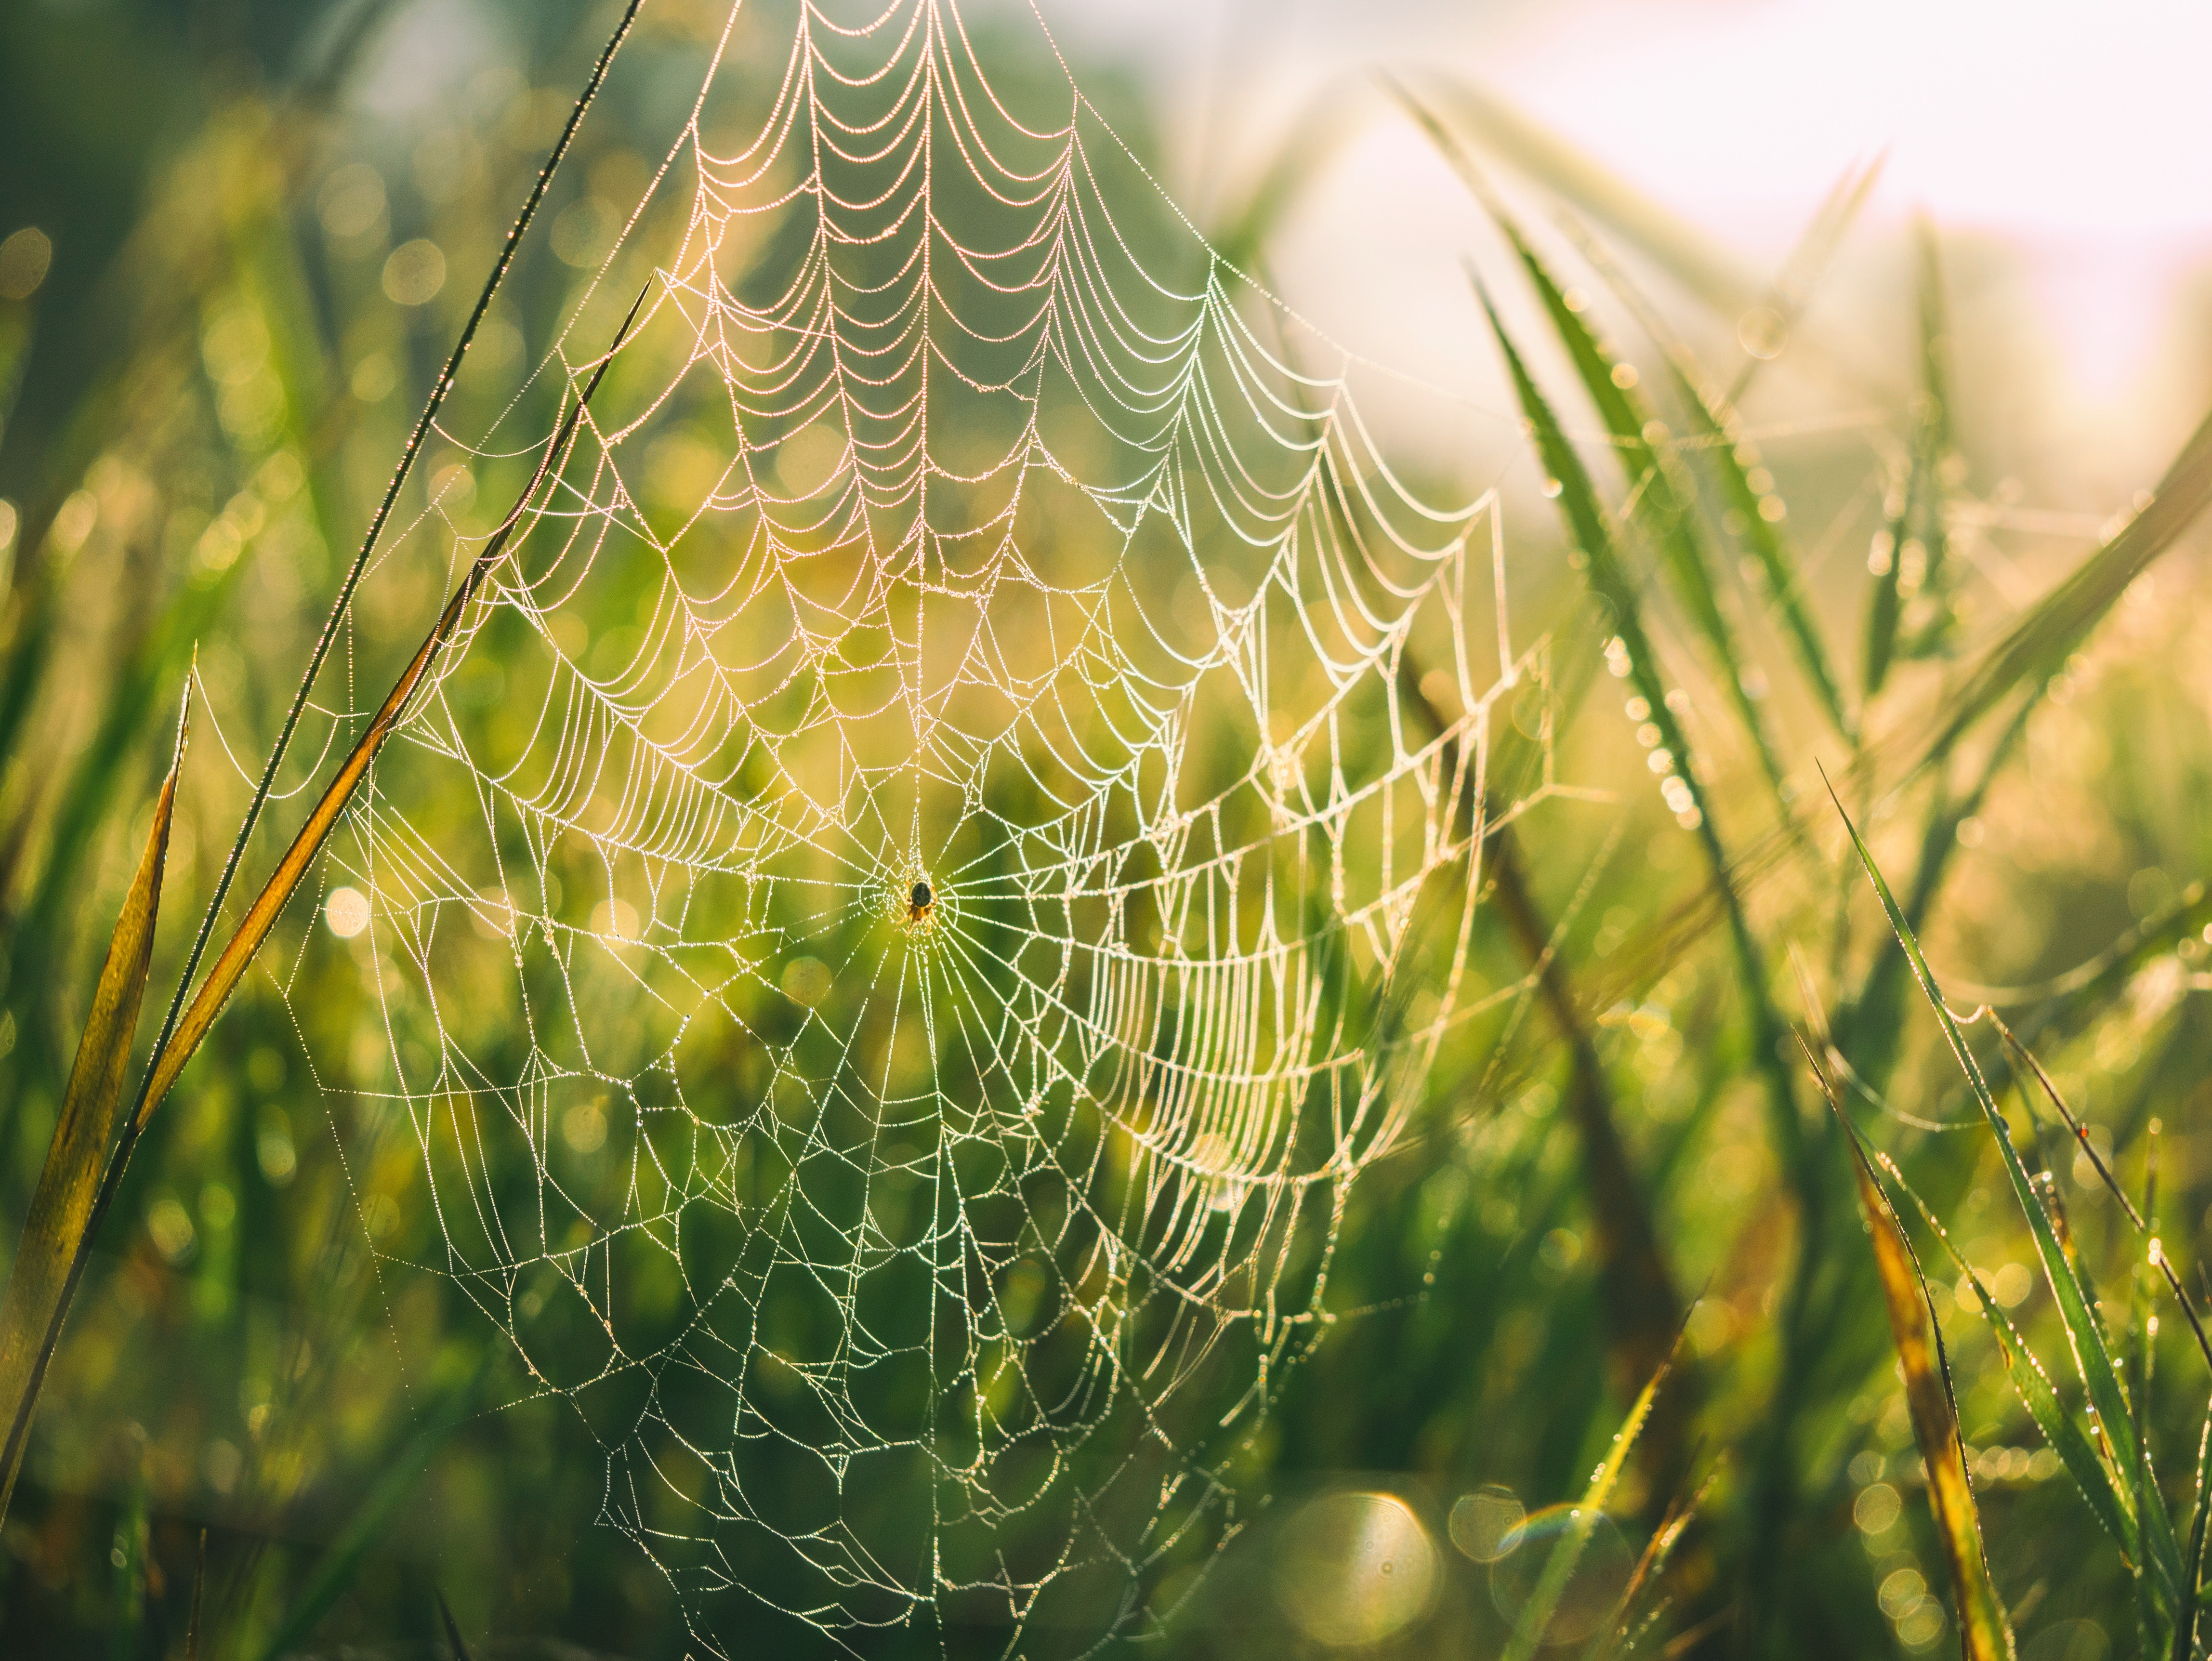 God's Greatness in Spider